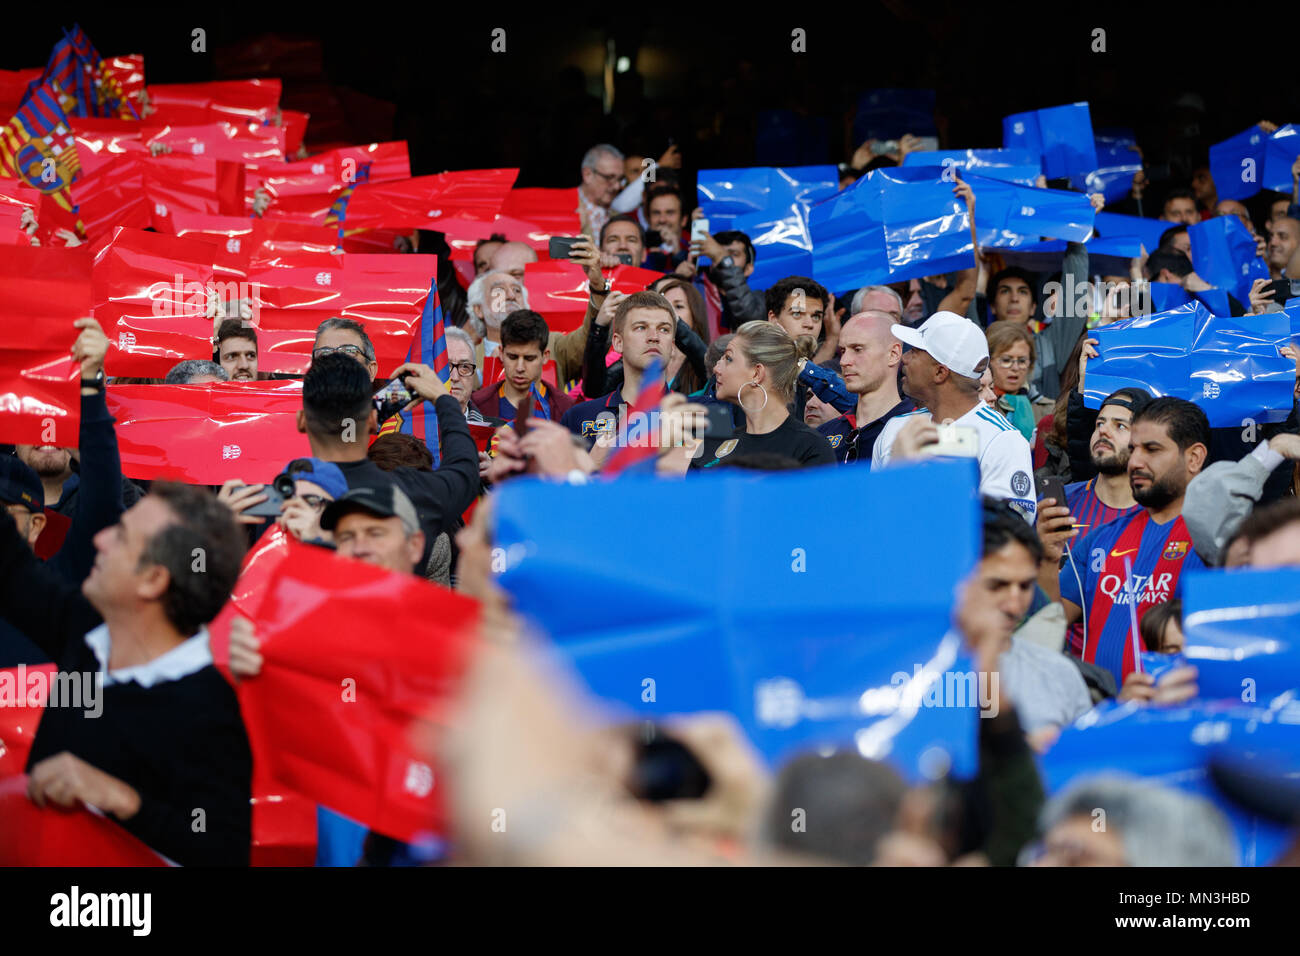 Barcelona, 6th May: People into Camp Nou Stadium during the 2017/2018 LaLiga Santander Round 36 game between FC Barcelona and Real Madrid at Camp Nou  - Stock Image